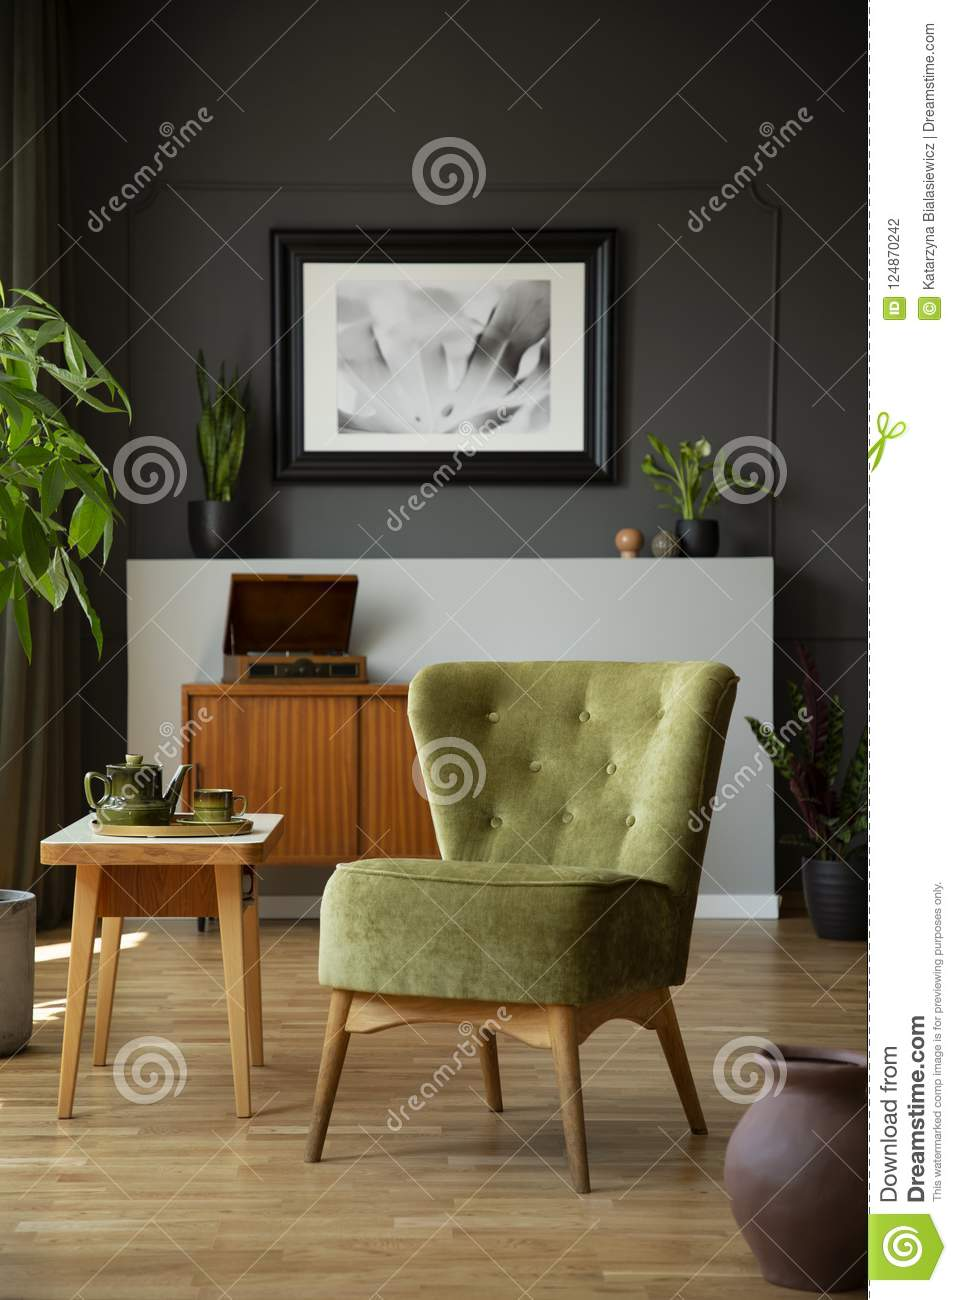 Green Chair Next To Wooden Table In Dark Living Room